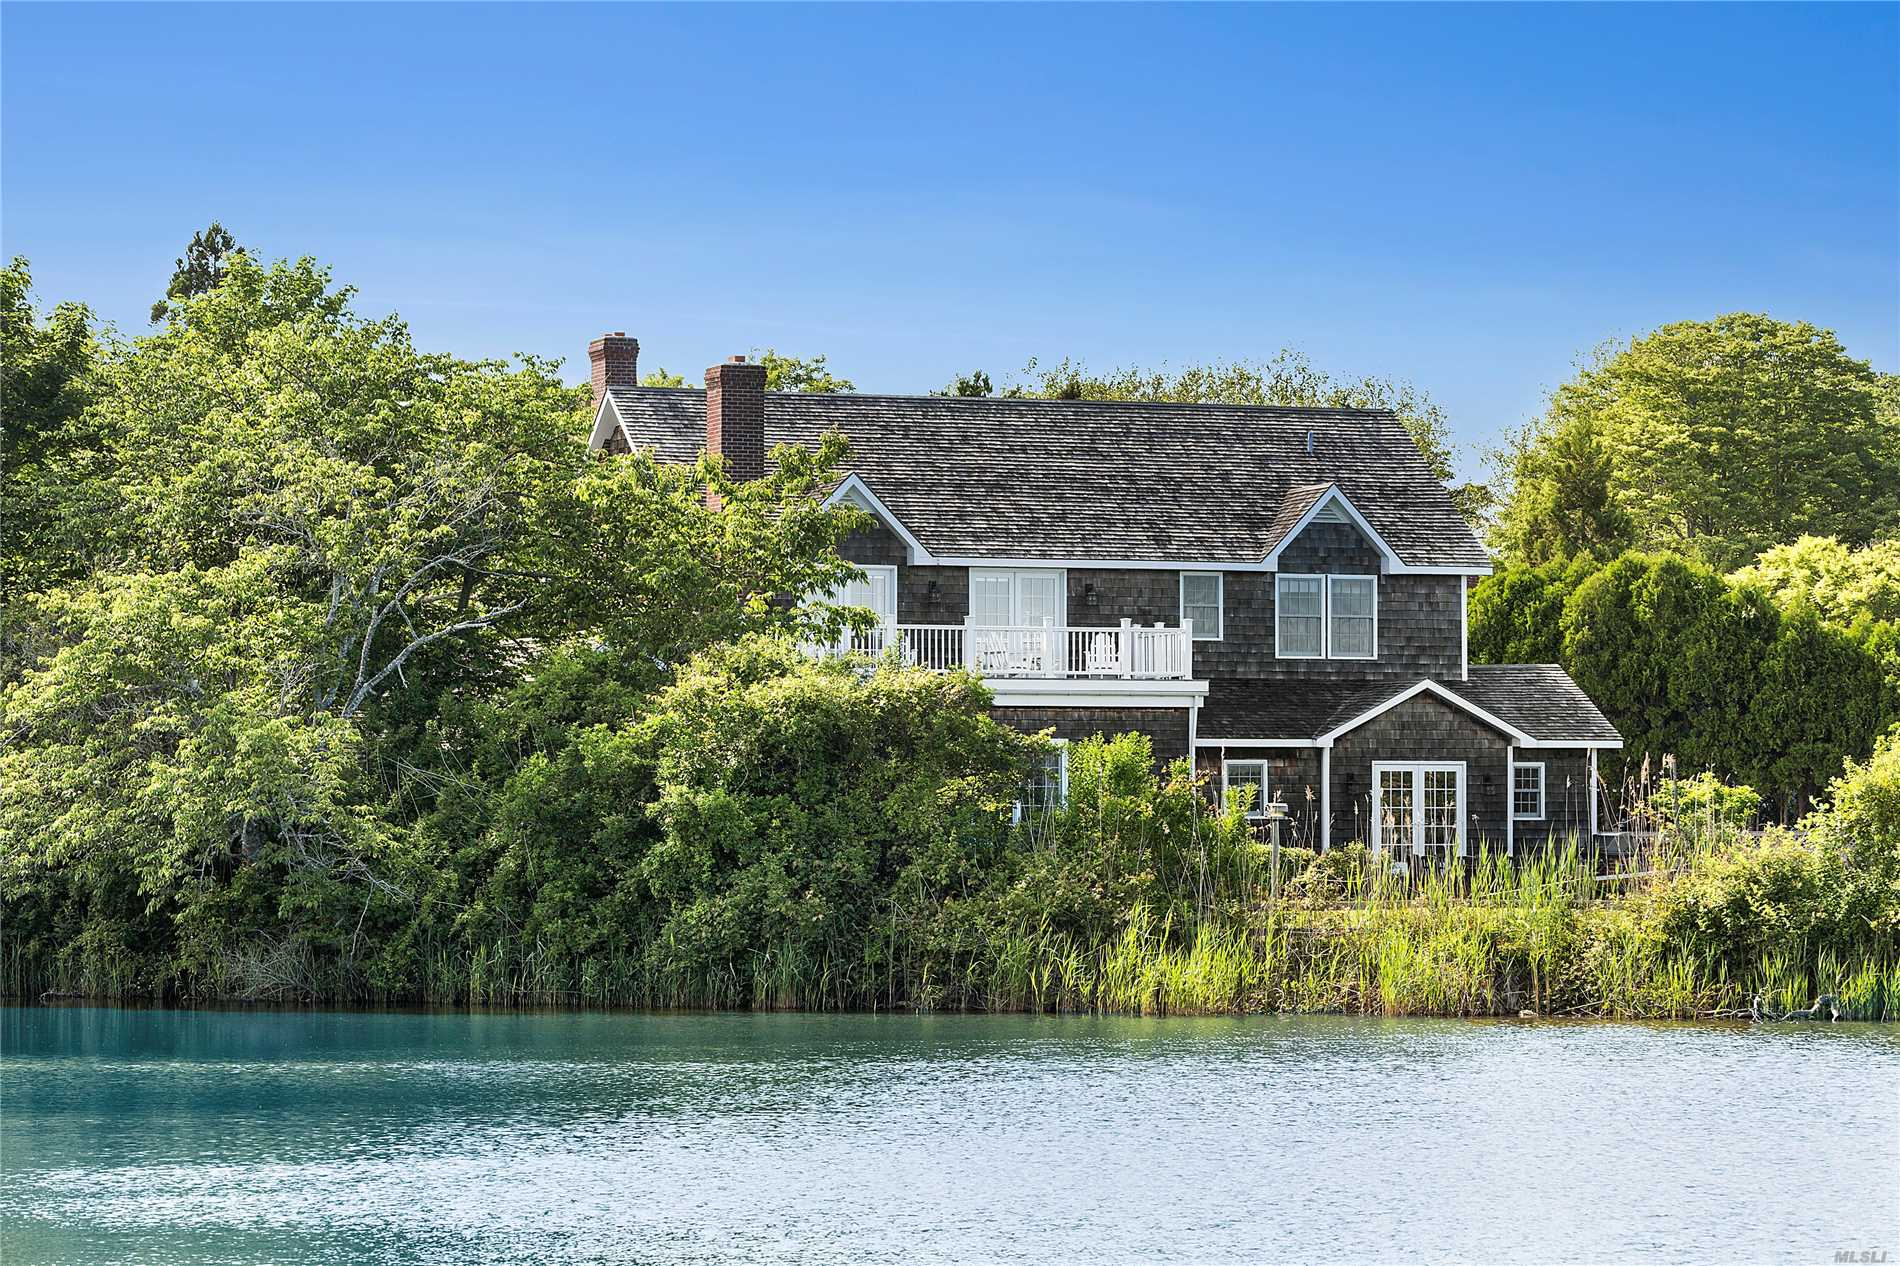 This Traditional Two-Story House In East Hampton South Is Located On Hook Pond And Is Next To Main Beach, With Direct Access To Hook Pond For Kayak And Paddle Board Enthusiasts. Completed In 2009, The First Floor Features A Living Room With Fireplace, Dining Room With Fireplace, Den, Master Bedroom And Bath, Large Country Kitchen, Powder Room, Laundry Room And Wide Plank Floors. The Second Floor Includes Three En-Suite Bedrooms And A Second Story Sundeck.